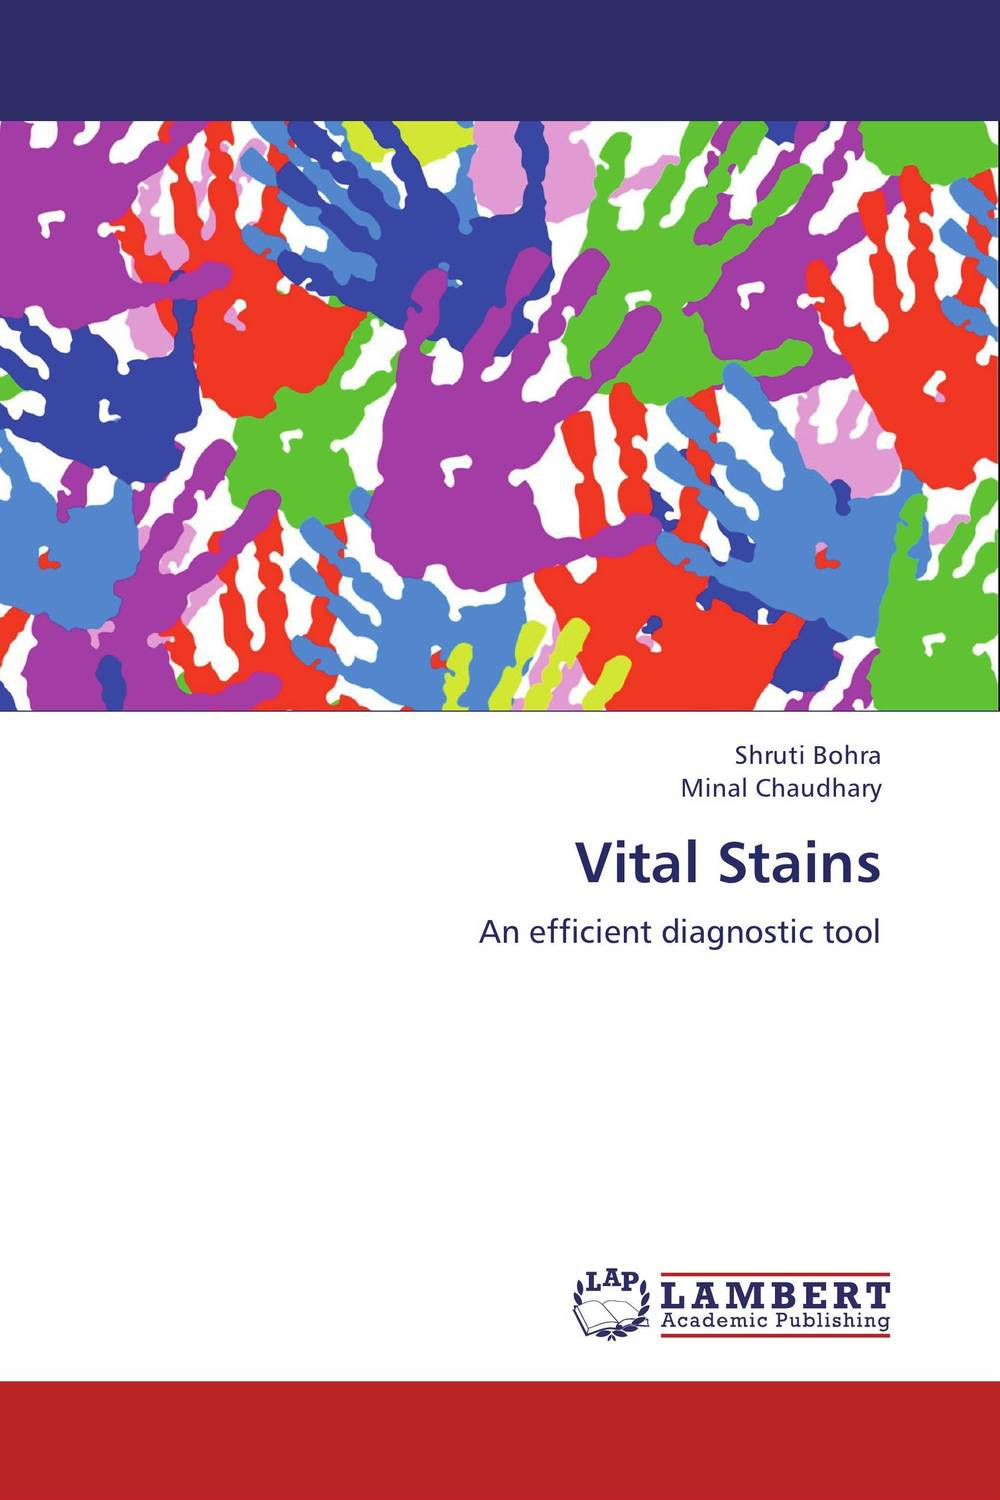 Vital Stains late stage diagnosis of cervical cancer